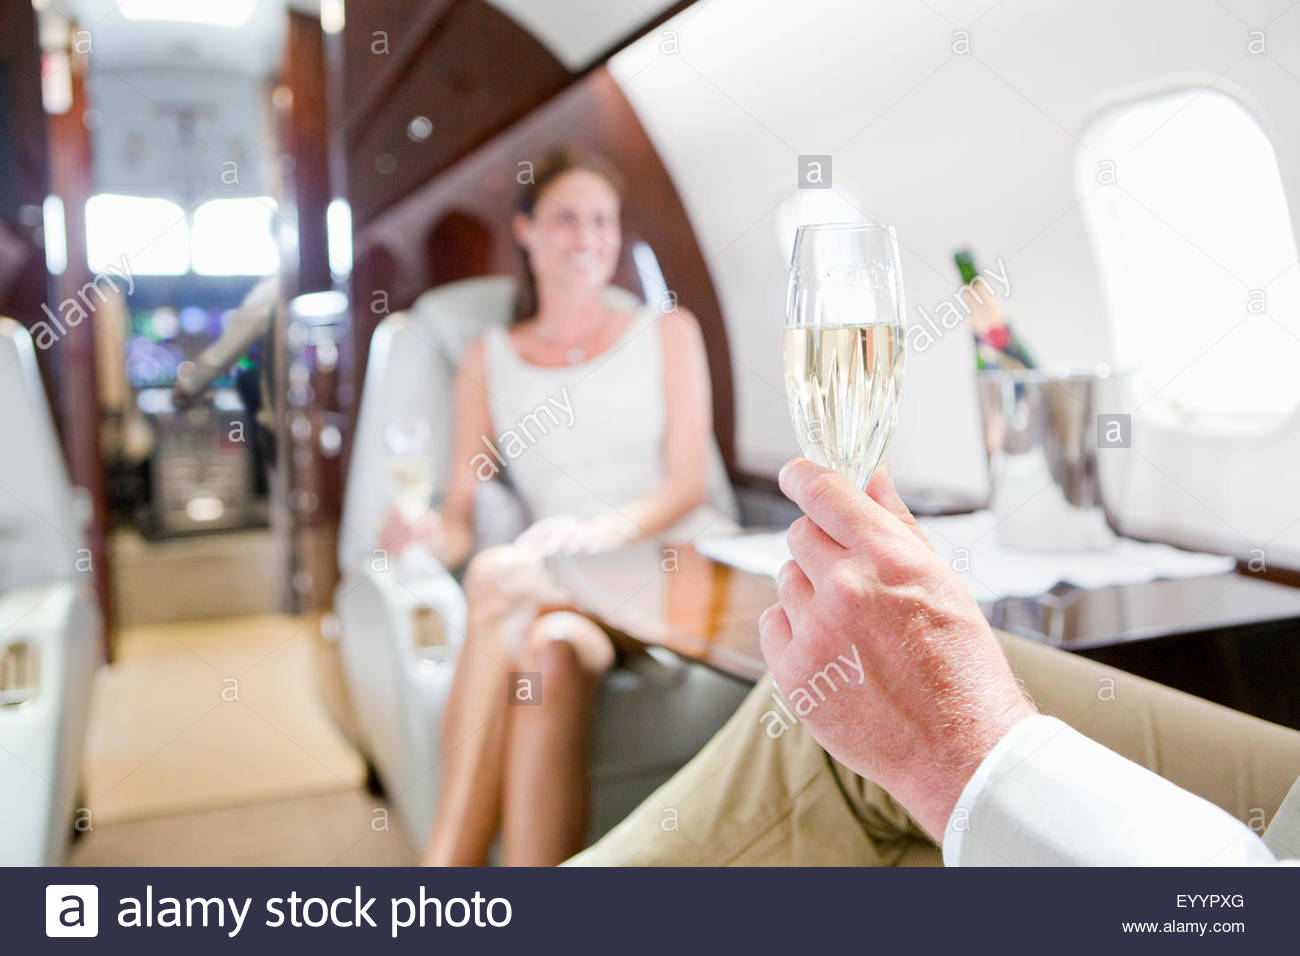 Close-up of glass of champagne in man's hand with woman in background on private jet - Stock Image